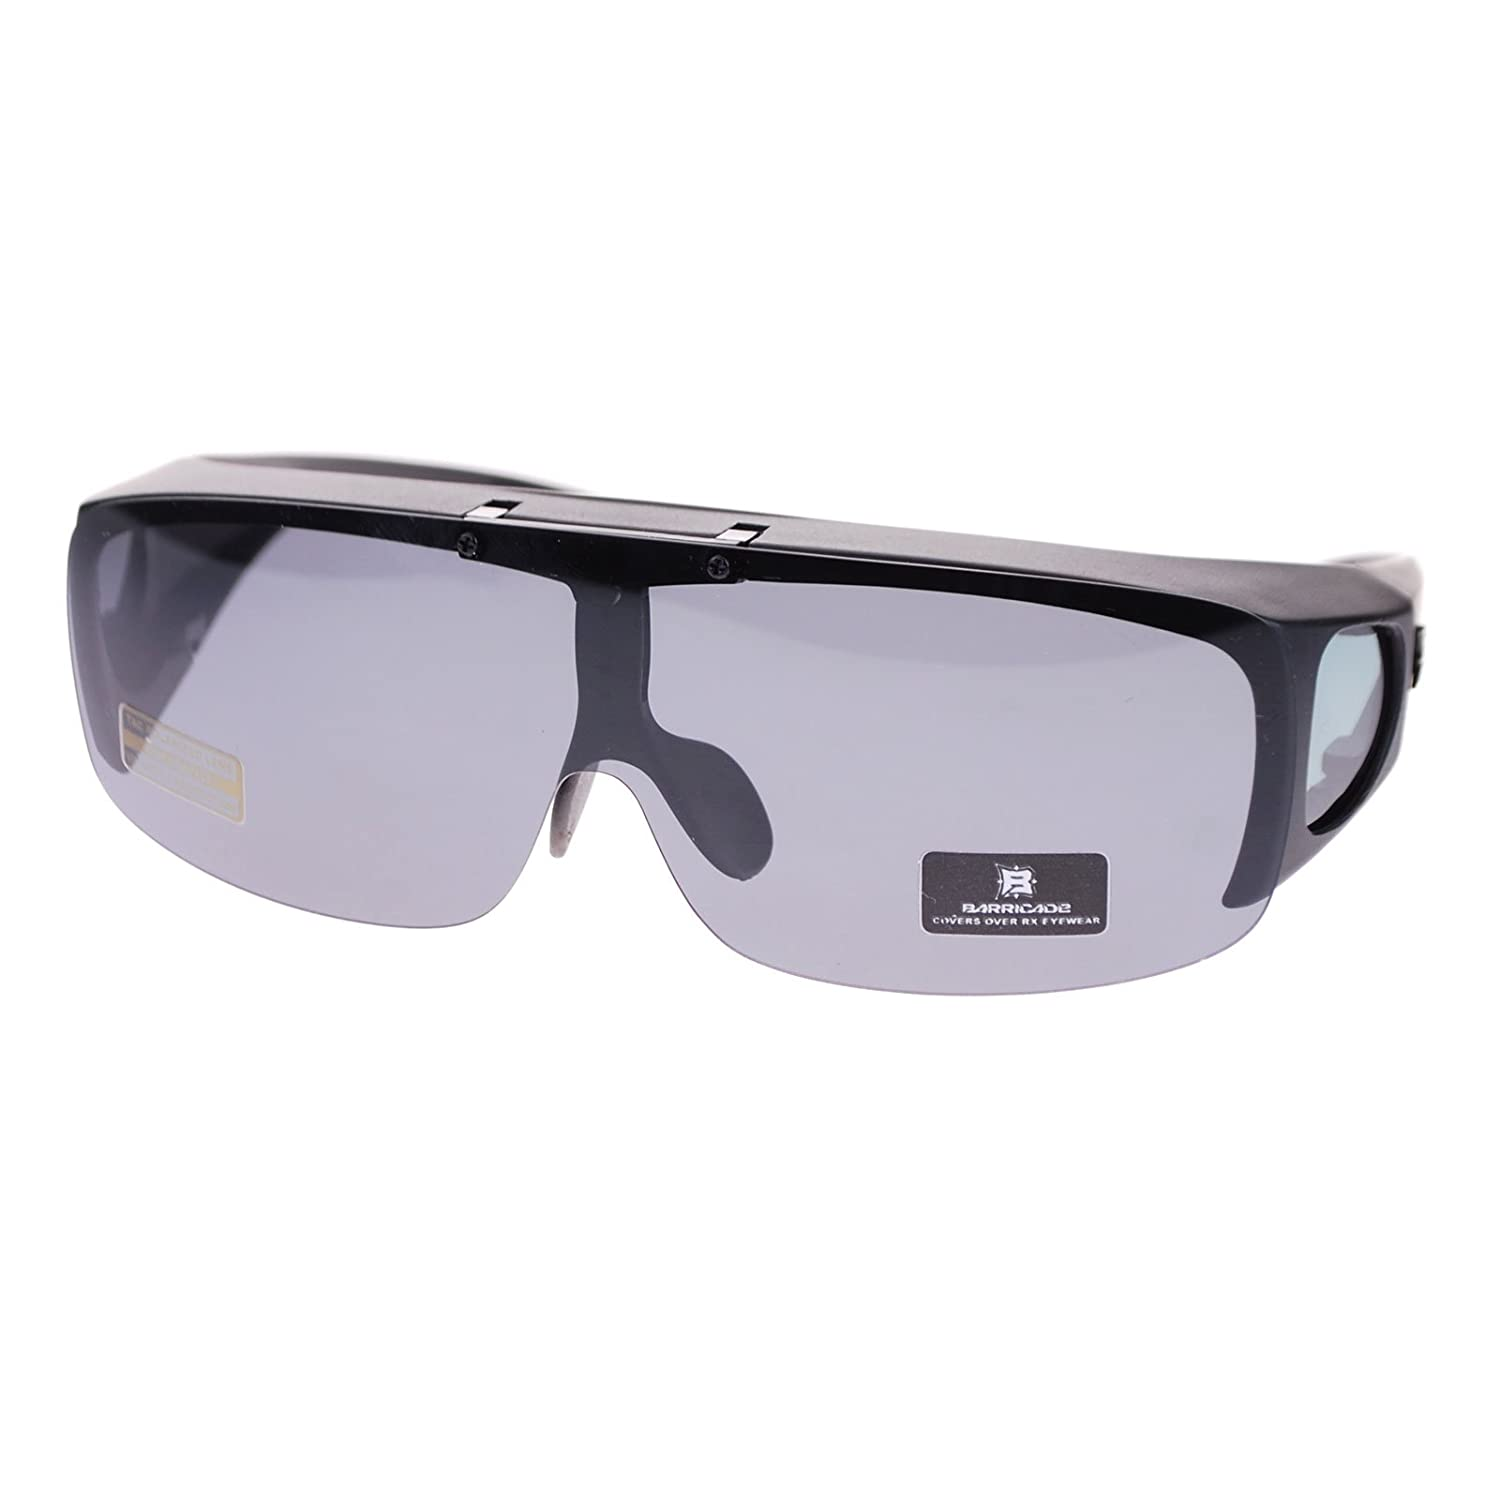 be0a6ece21 Amazon.com  Barricade Large Mens Polarized Flip Up Fitover Sunglasses All  Black  Clothing